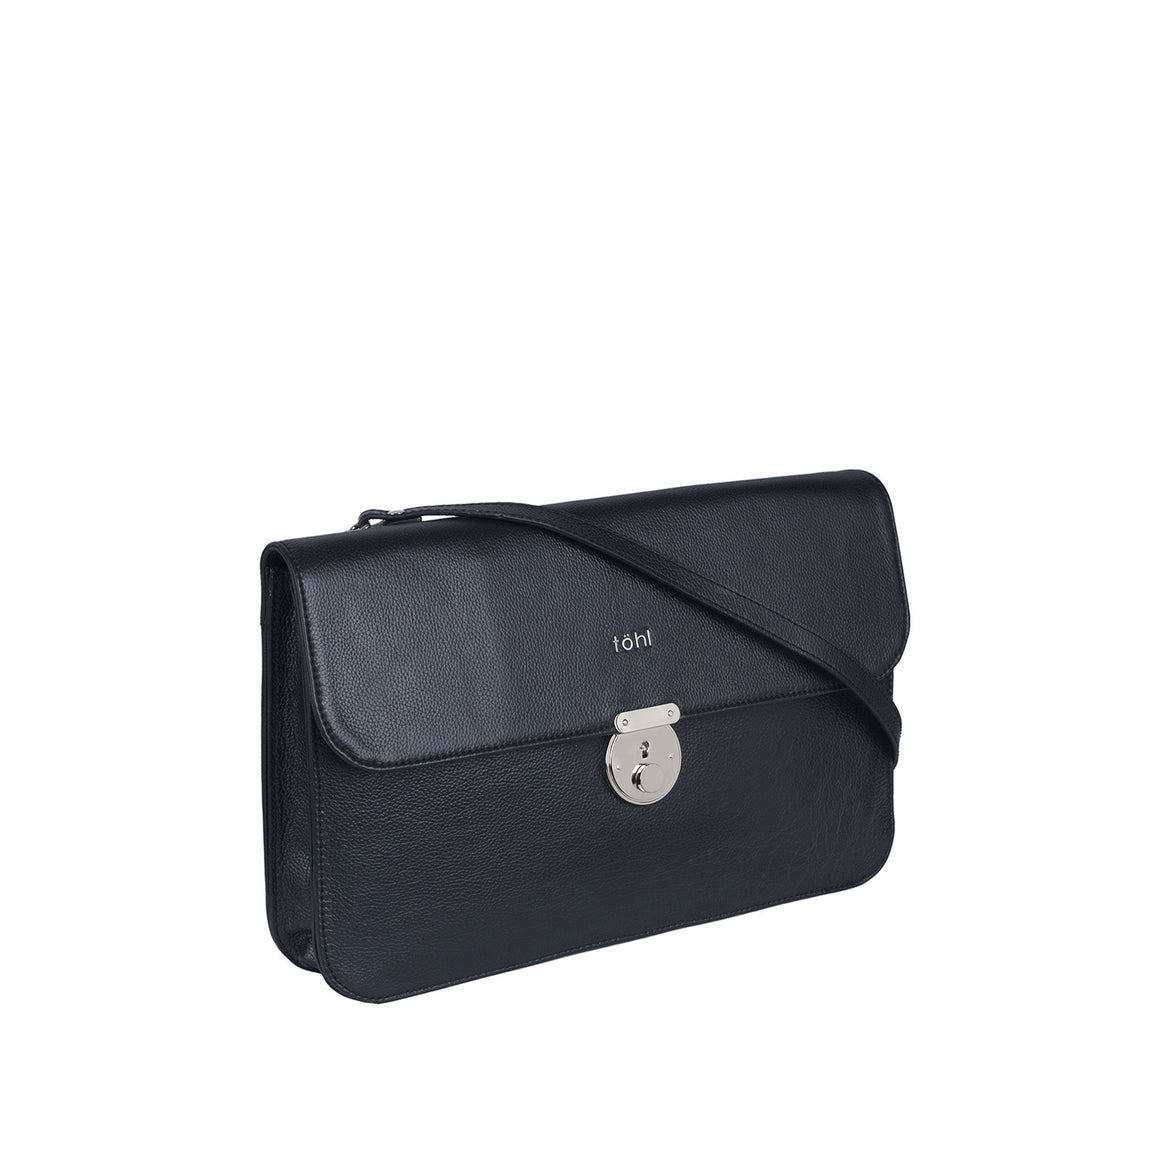 SG 0005 - TOHL WAVERLEY WOMEN'S SLING BAG - CHARCOAL BLACK